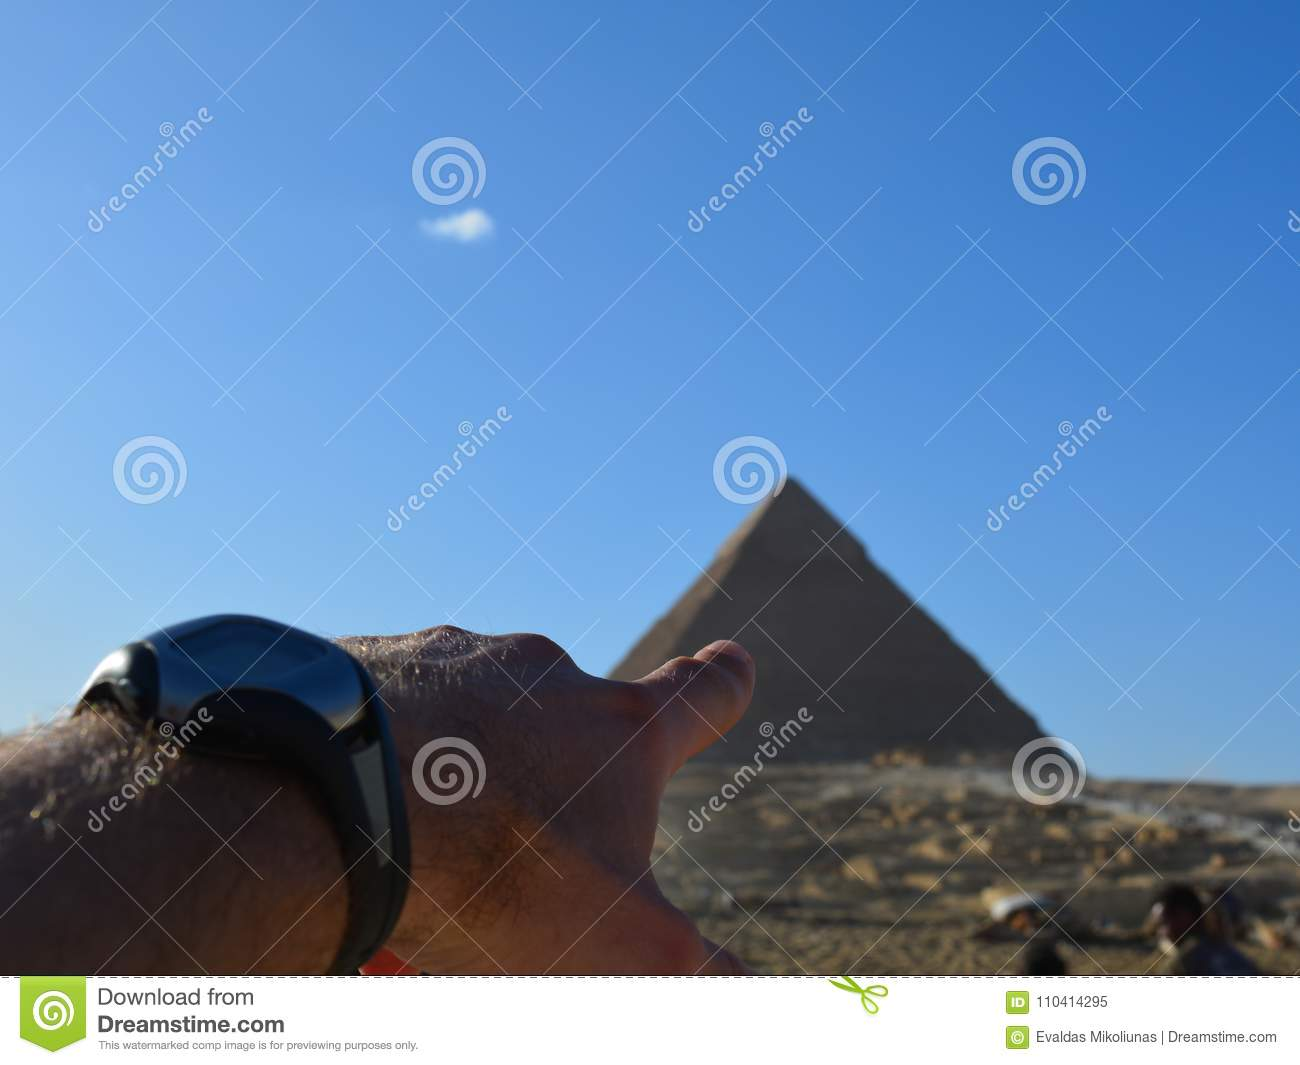 Point of interest is Egyptian pyramid